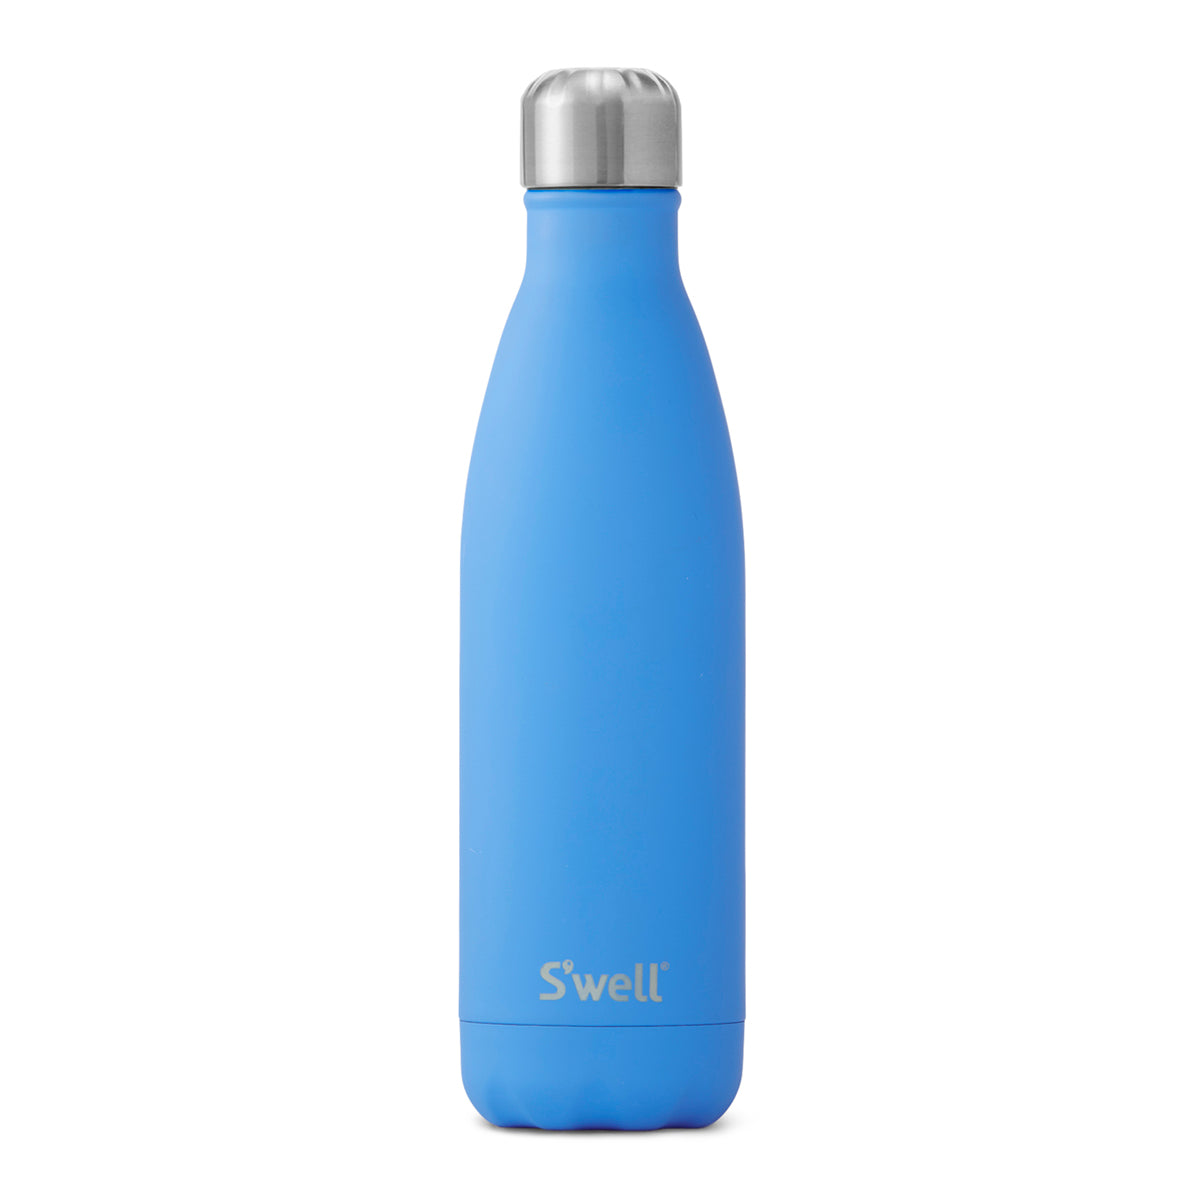 S'Well: Soft Touch Collection - 500ml Geyser